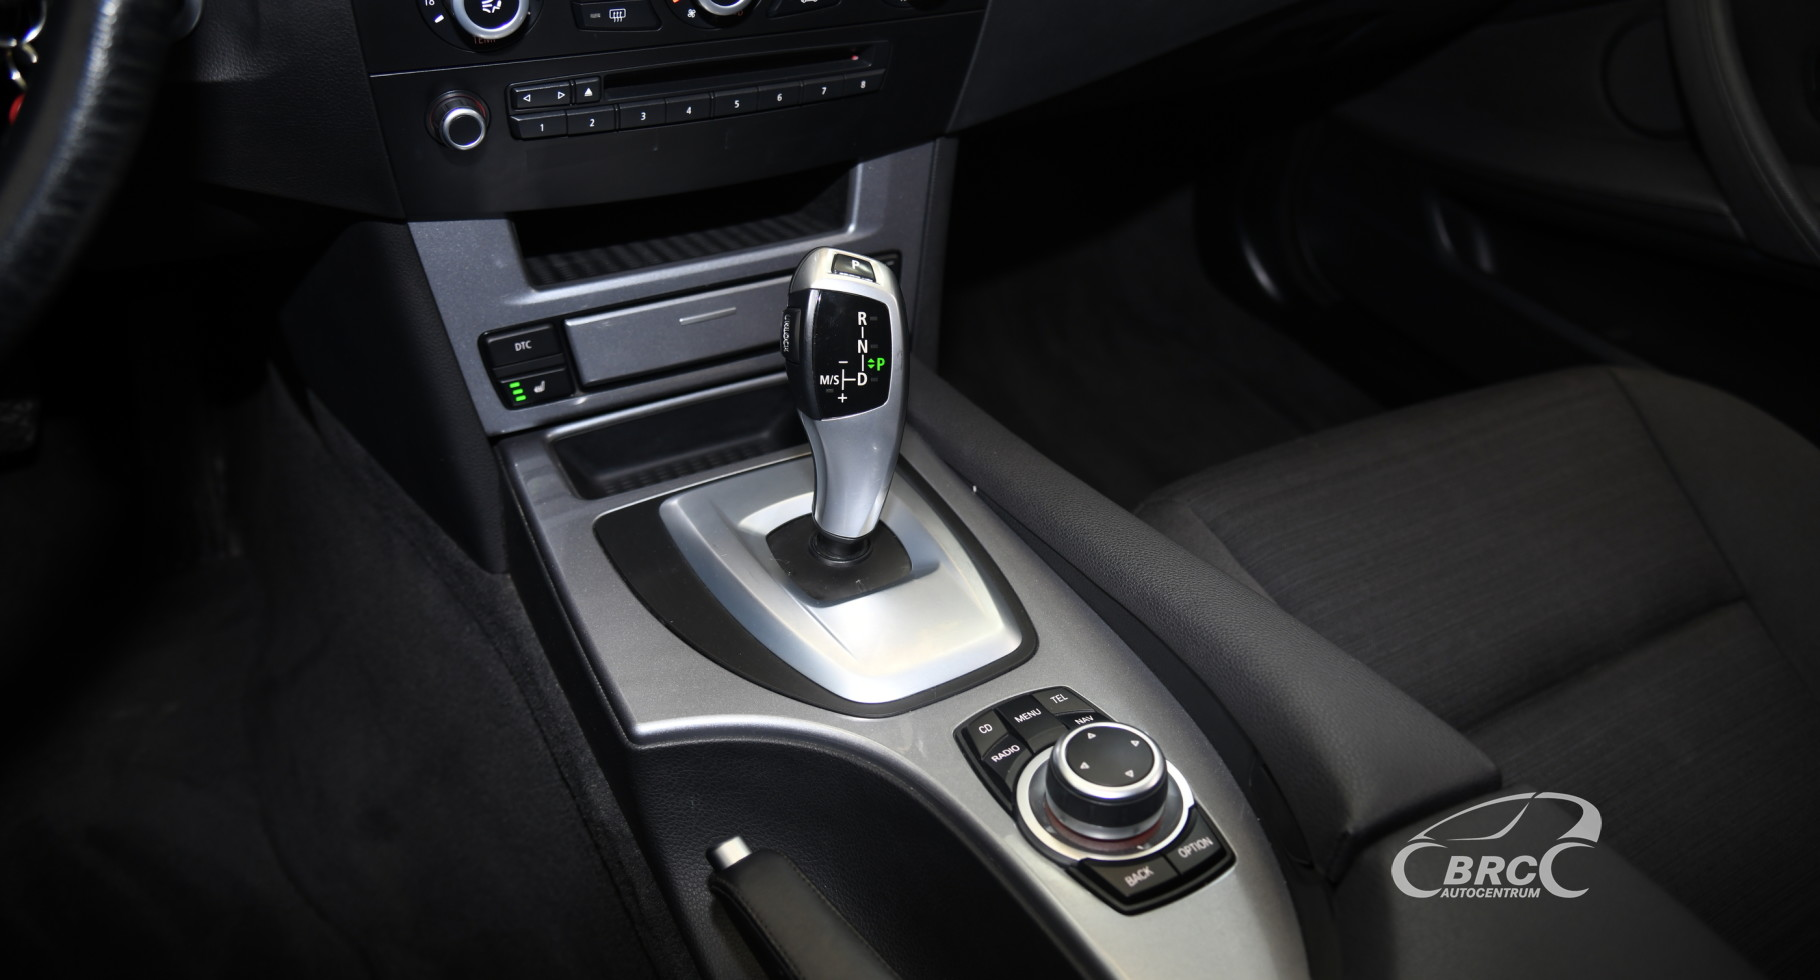 BMW 520 d Automatas Special Edition